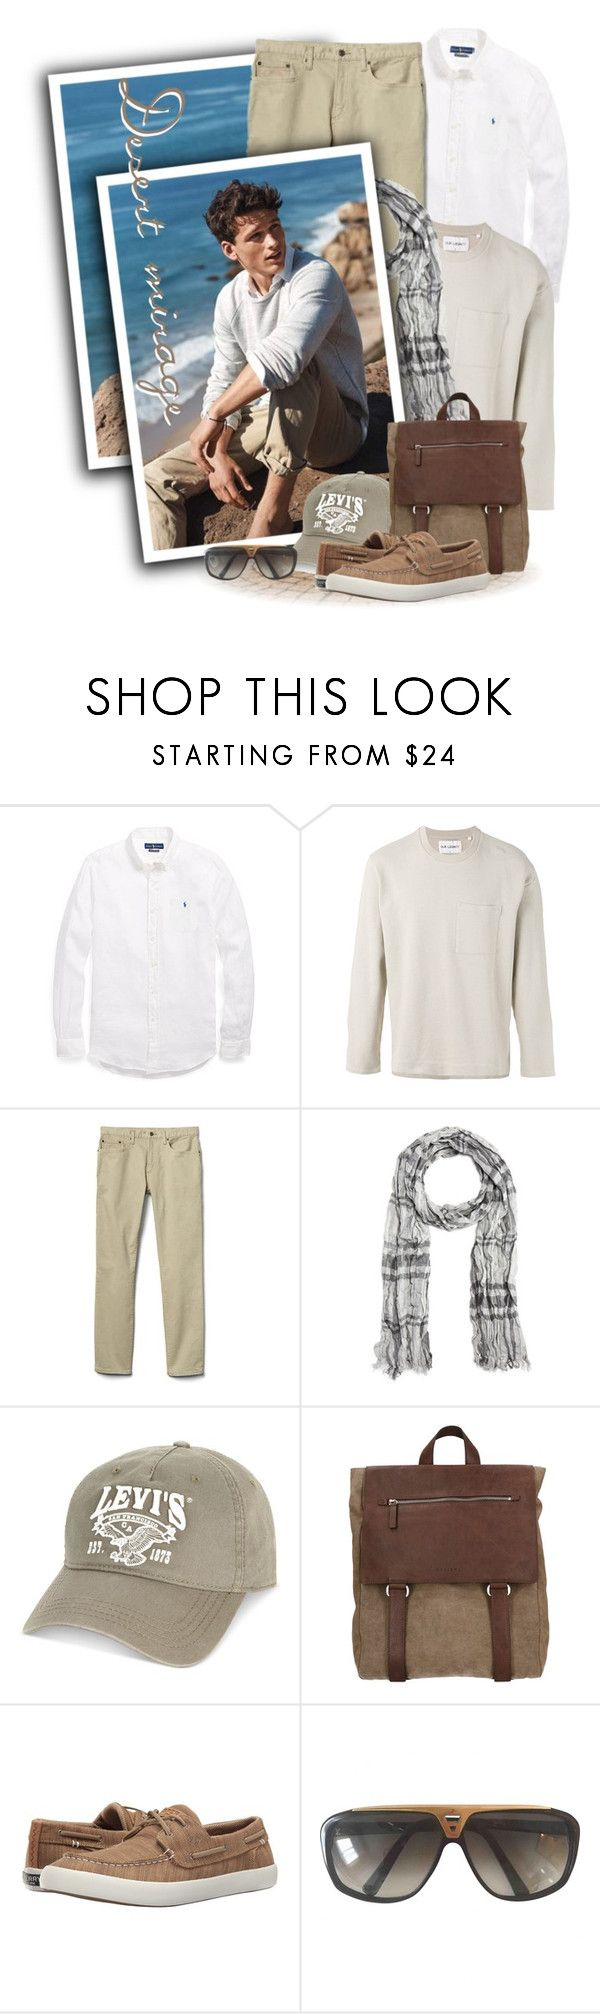 """Ocean-Wash Linen Sport Shirt"" by tasha1973 ❤ liked on Polyvore featuring Ralph Lauren, Our Legacy, Gap, John Varvatos * U.S.A., Levi's, Orciani, Sperry, Louis Vuitton, men's fashion and menswear"